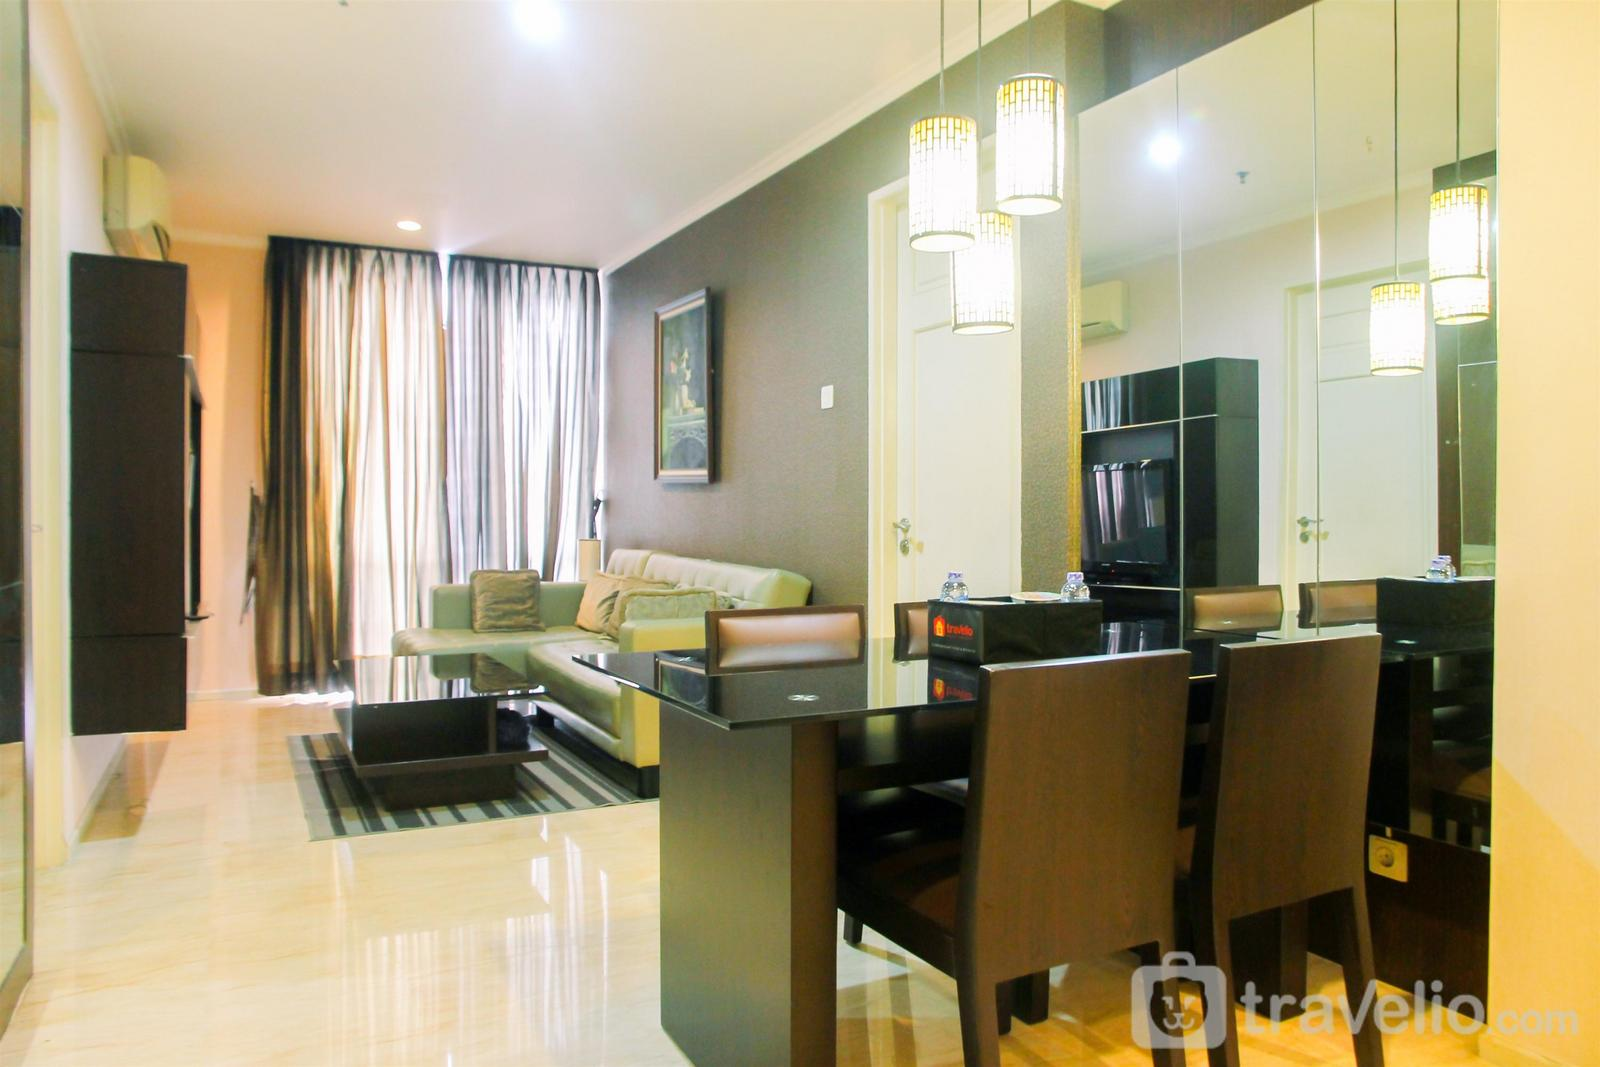 FX Residence Sudirman Senayan - 2+1BR Luxurious and Comfy Apartment at FX Residence By Travelio